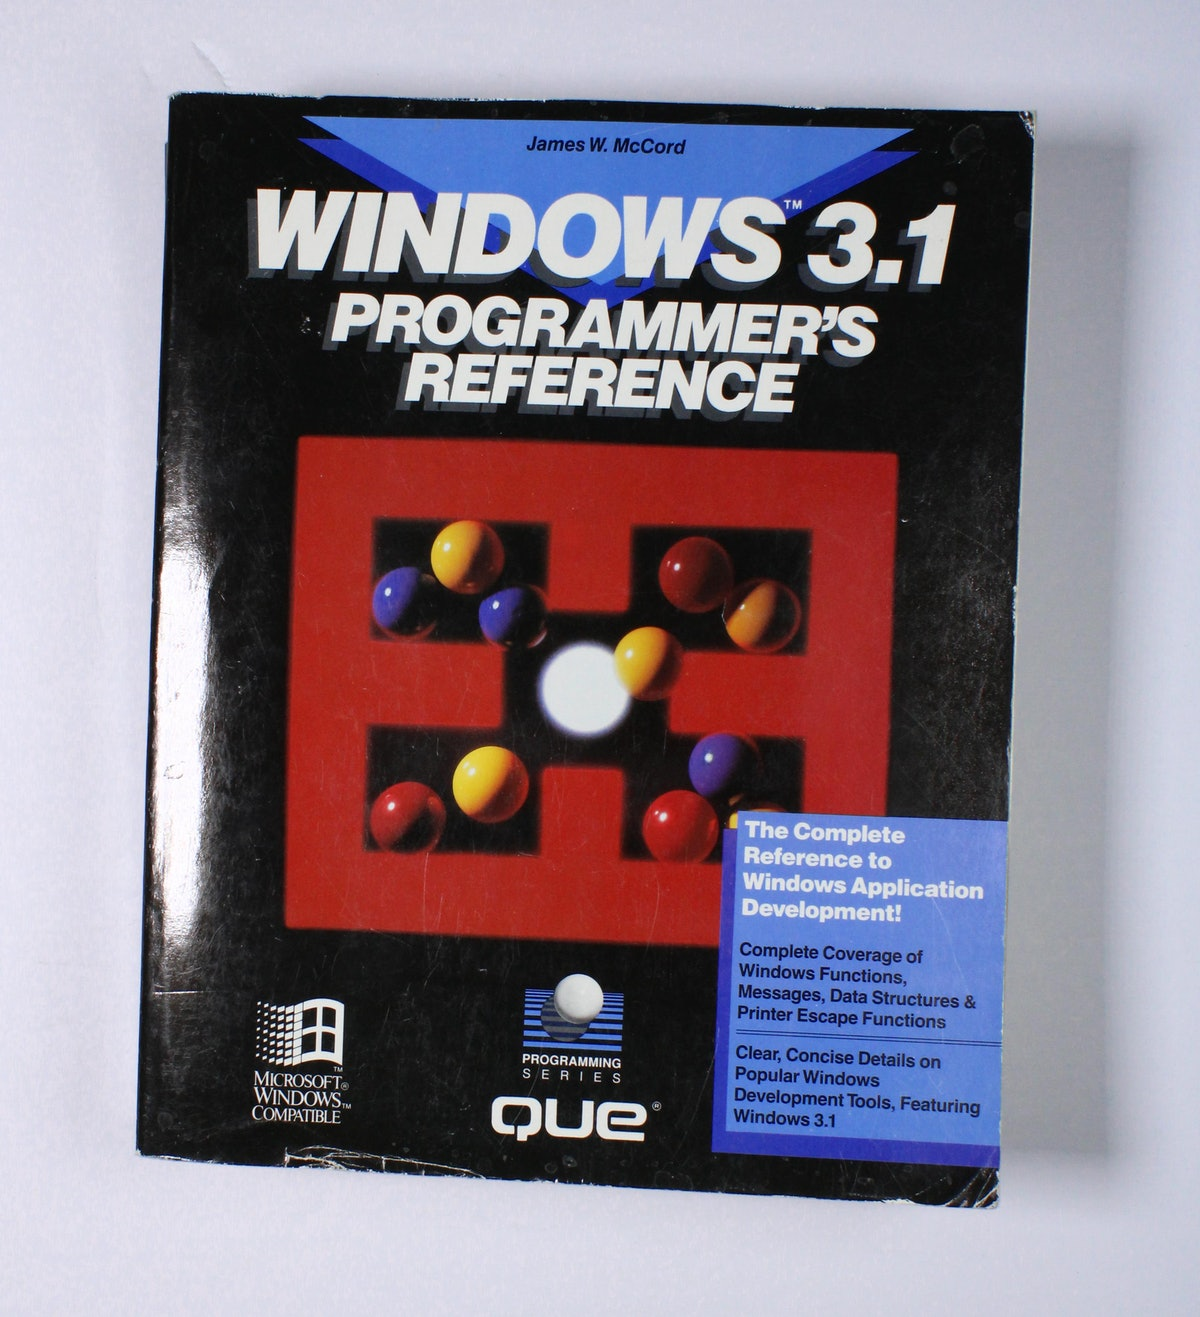 Windows 3.1 Programmer's Reference